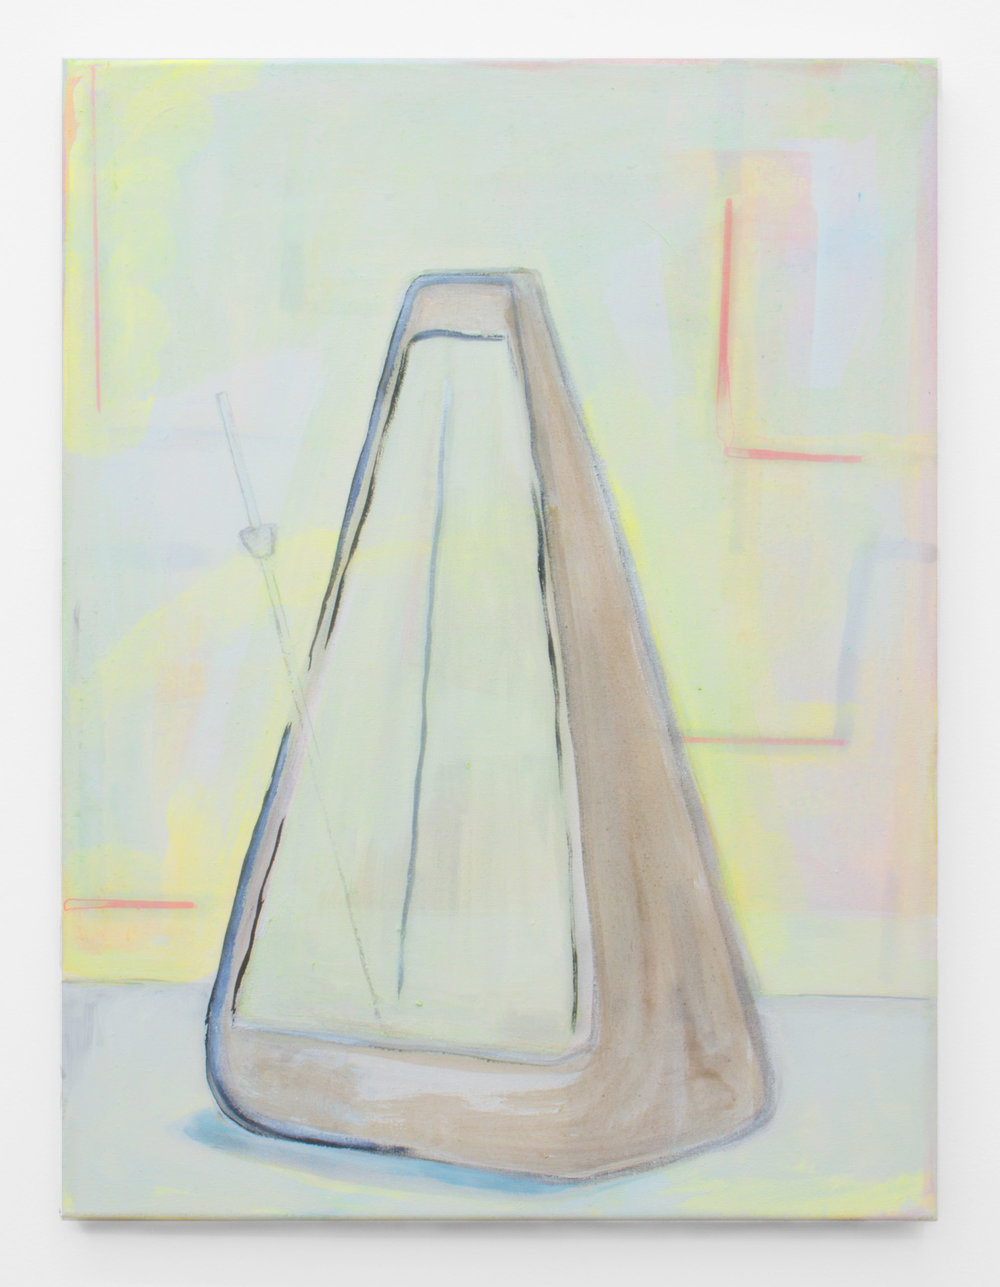 Metronome, 2015, 61 x 46 cm, acrylic, oil, emulsion and chalk on canvas.